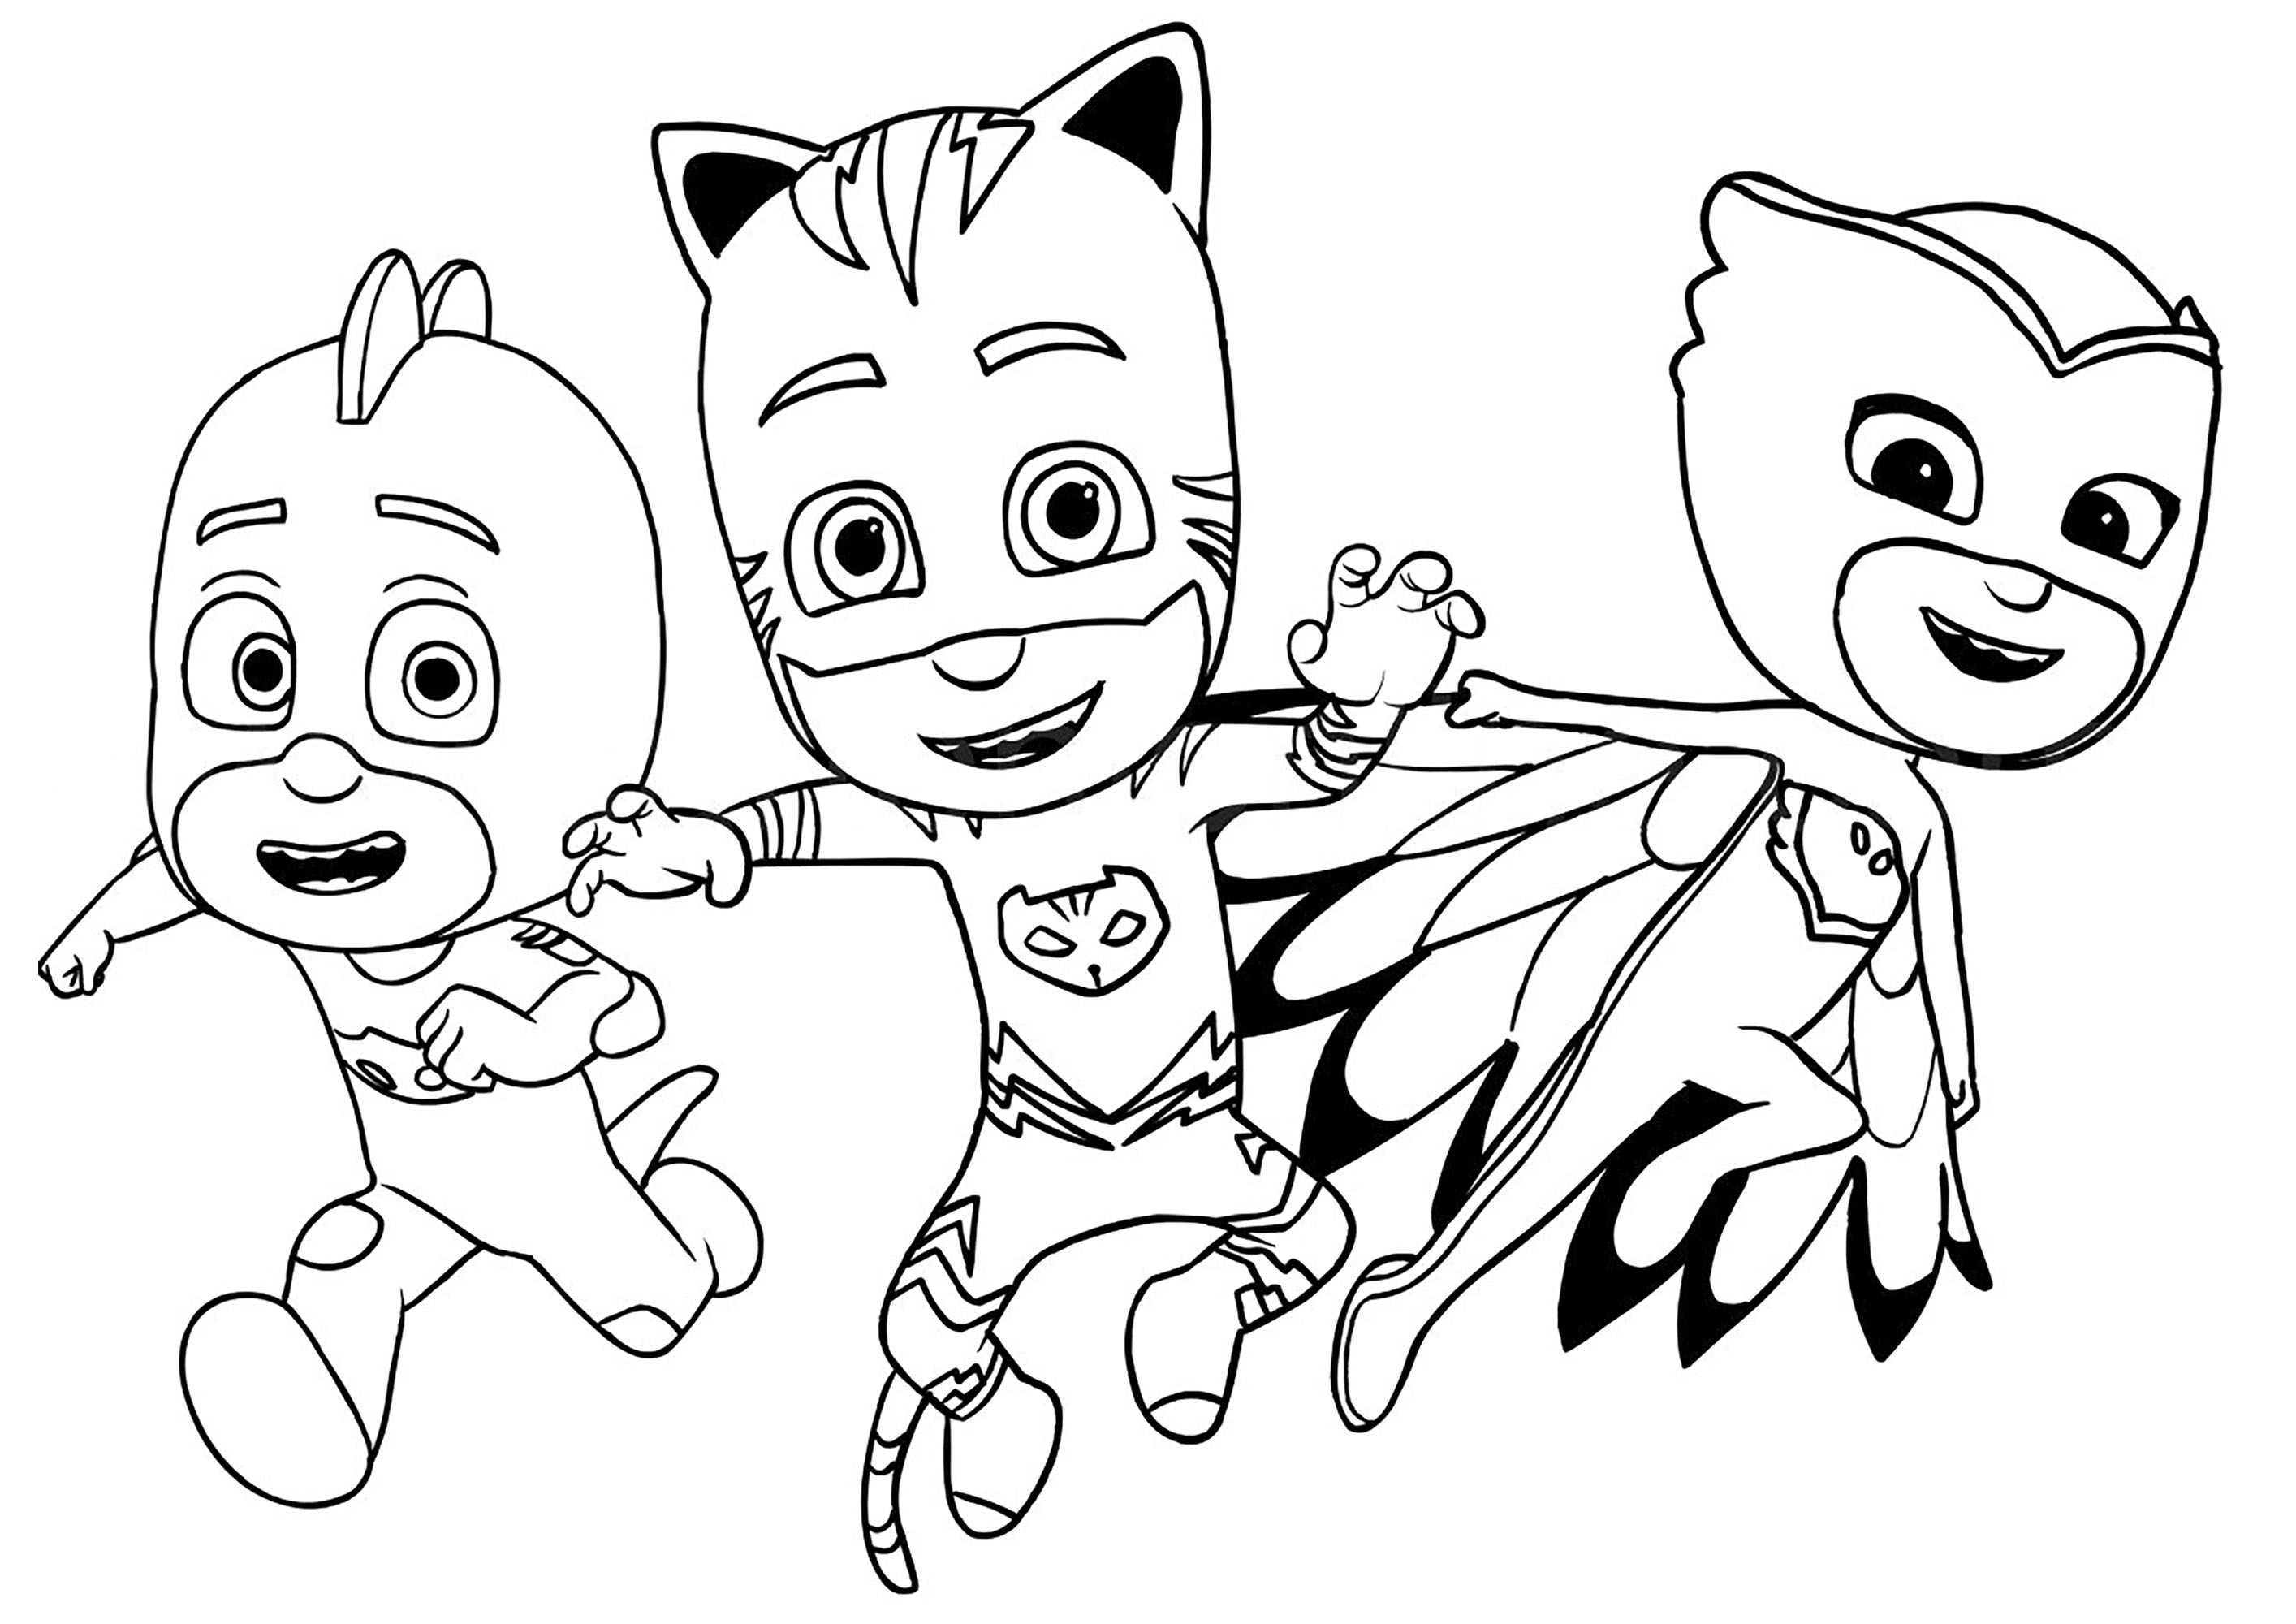 pj masks coloring pages printable Pj masks to print for free   PJ Masks Kids Coloring Pages pj masks coloring pages printable